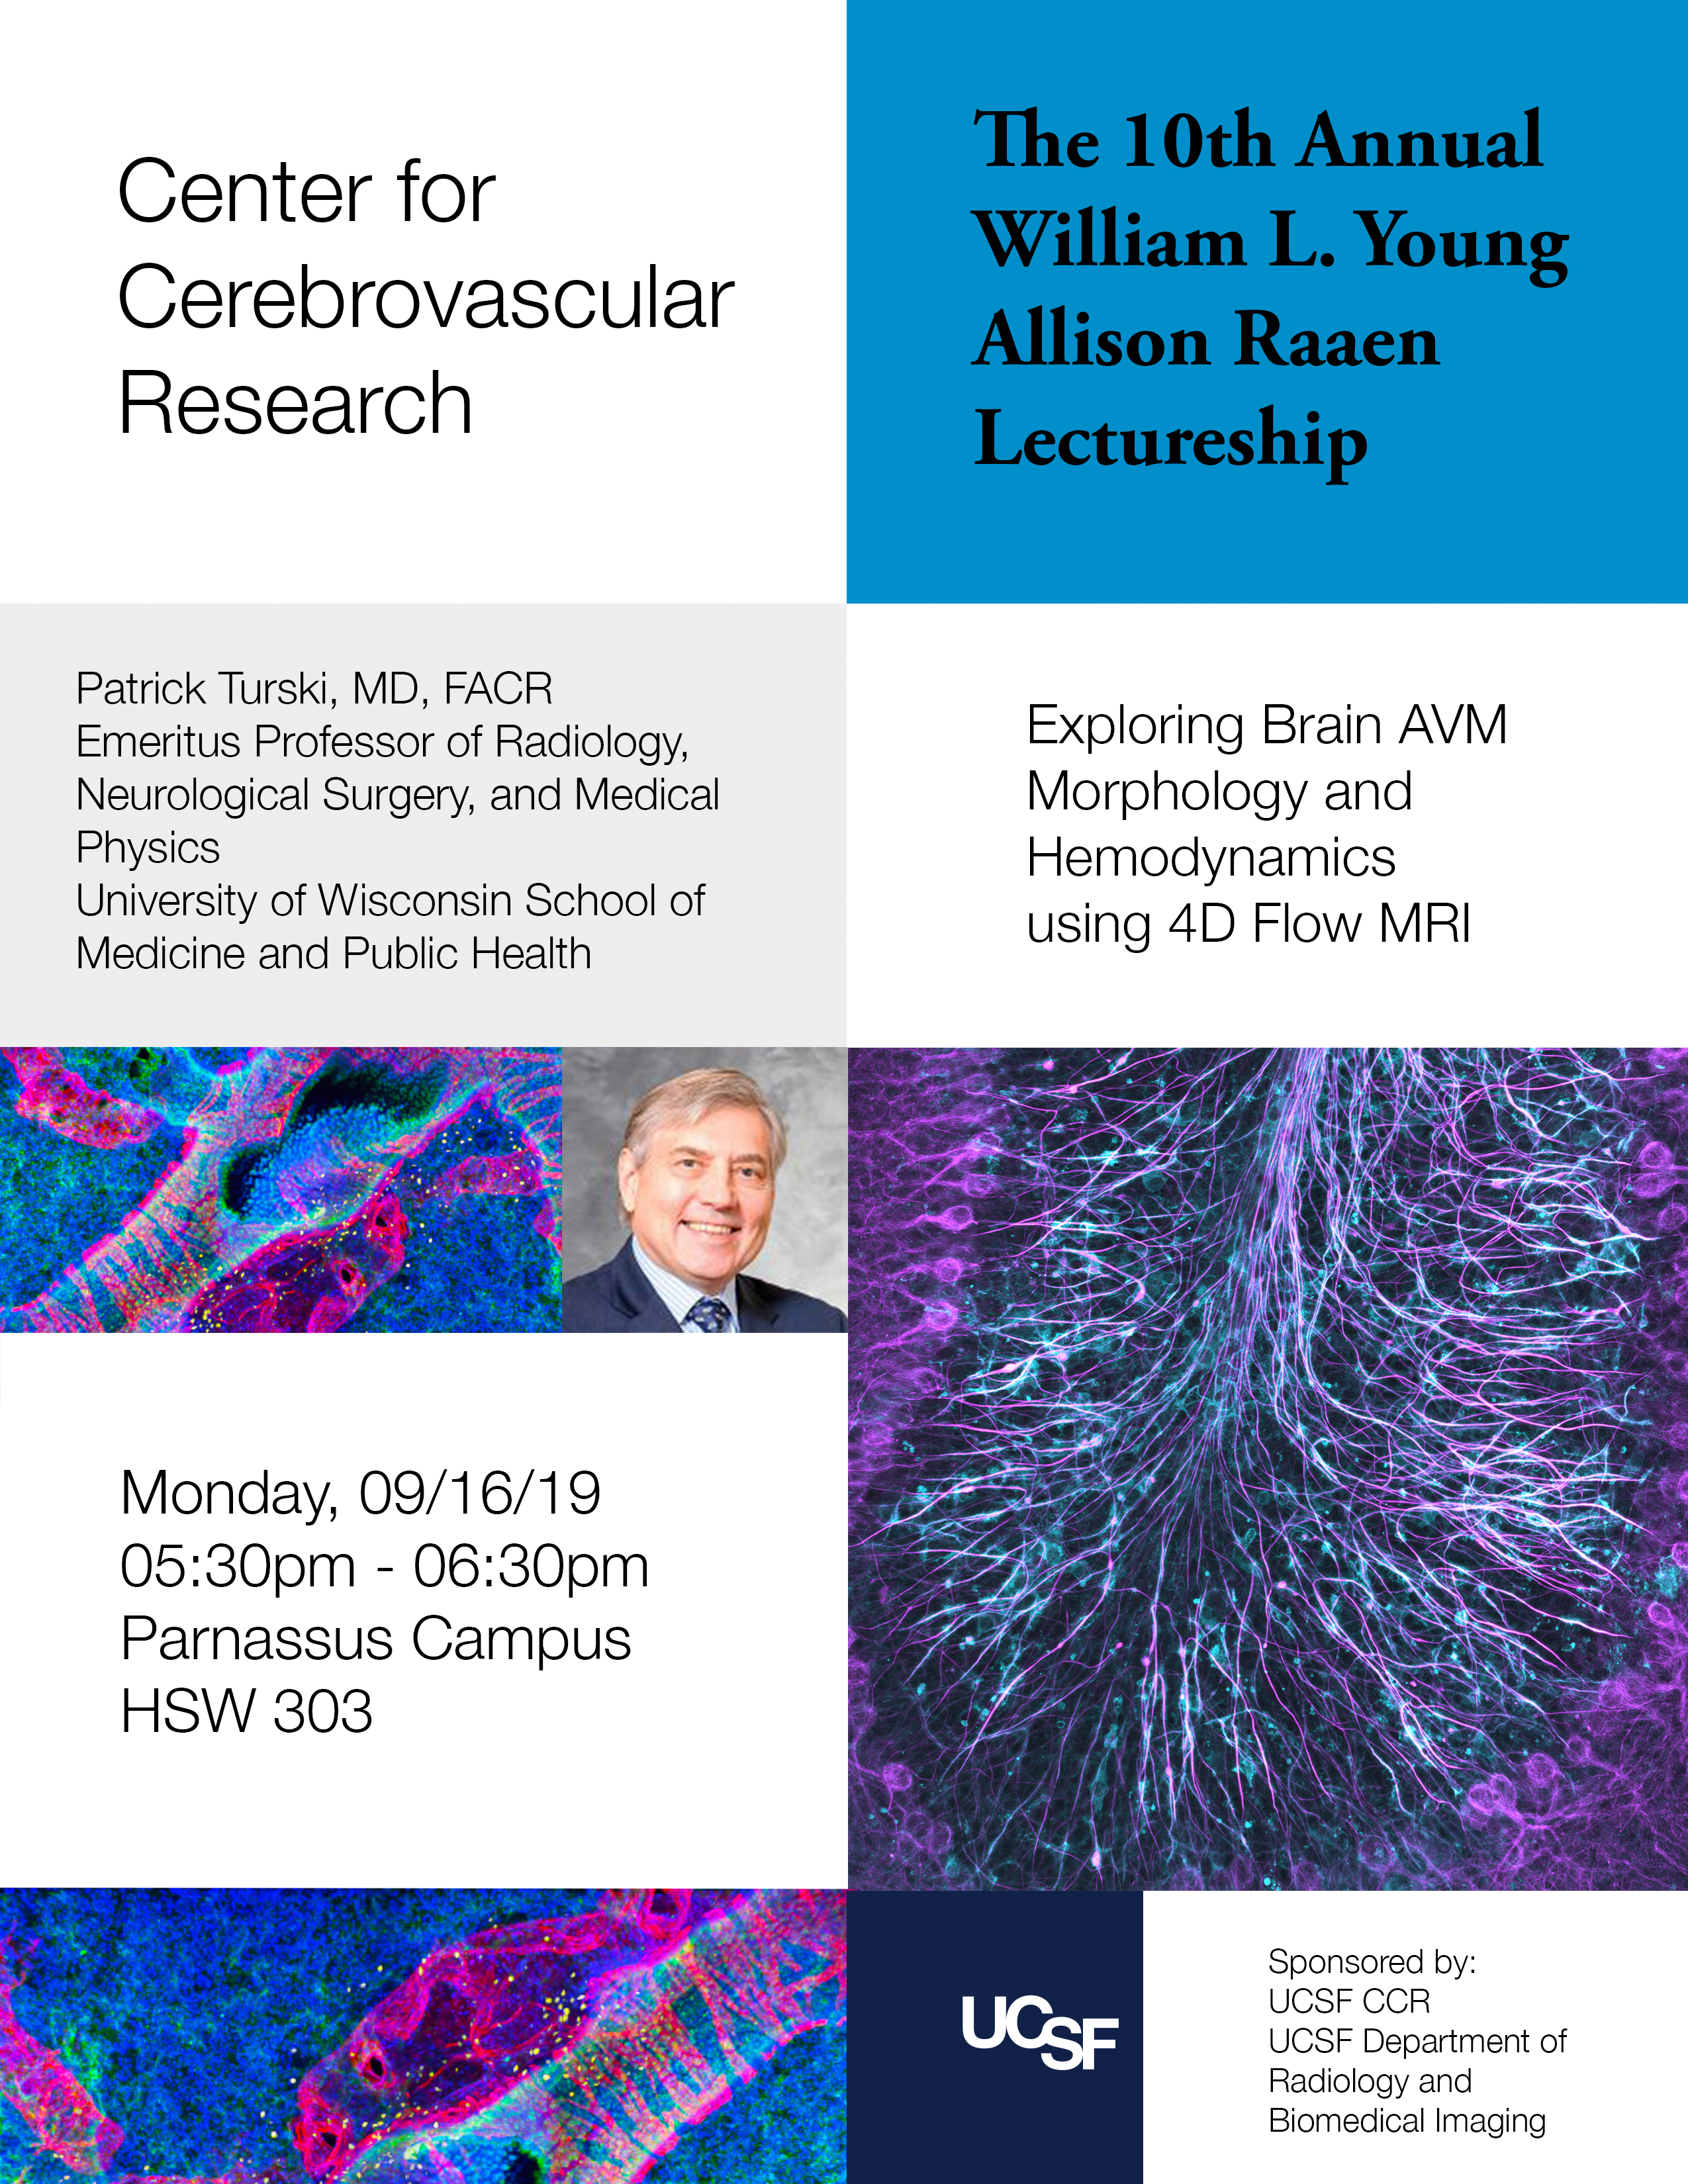 Flyer for September 16, 2019 Center for Cerebrovascular Research Lecture